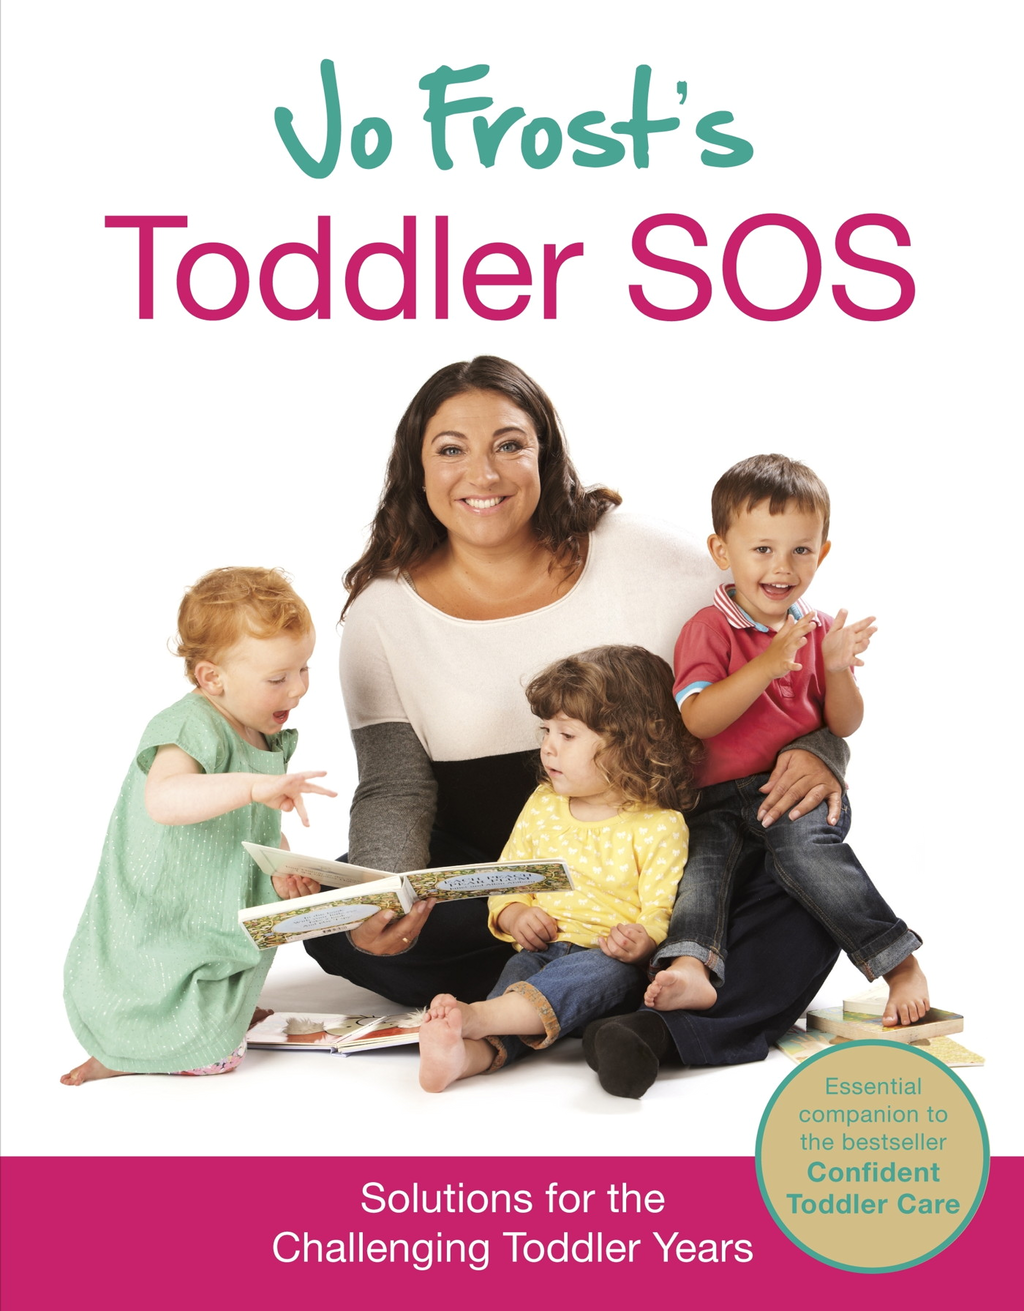 Jo Frost's Toddler SOS Solutions for the Trying Toddler Years